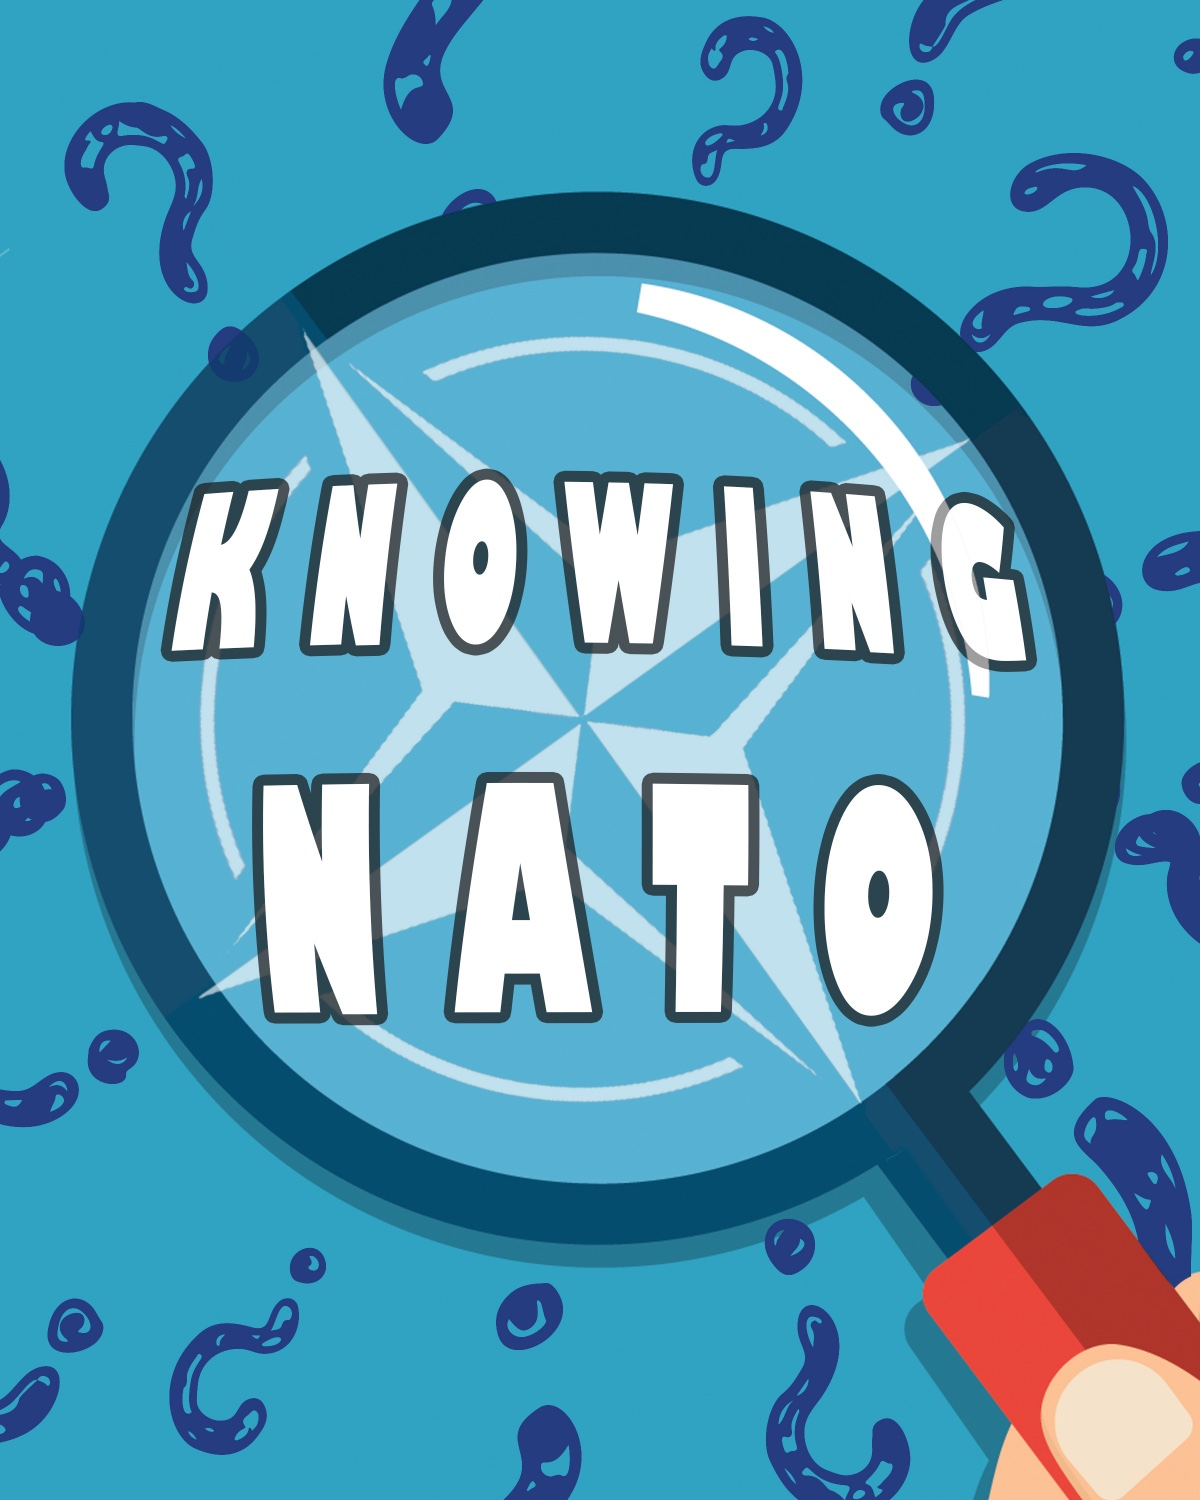 Knowing NATO